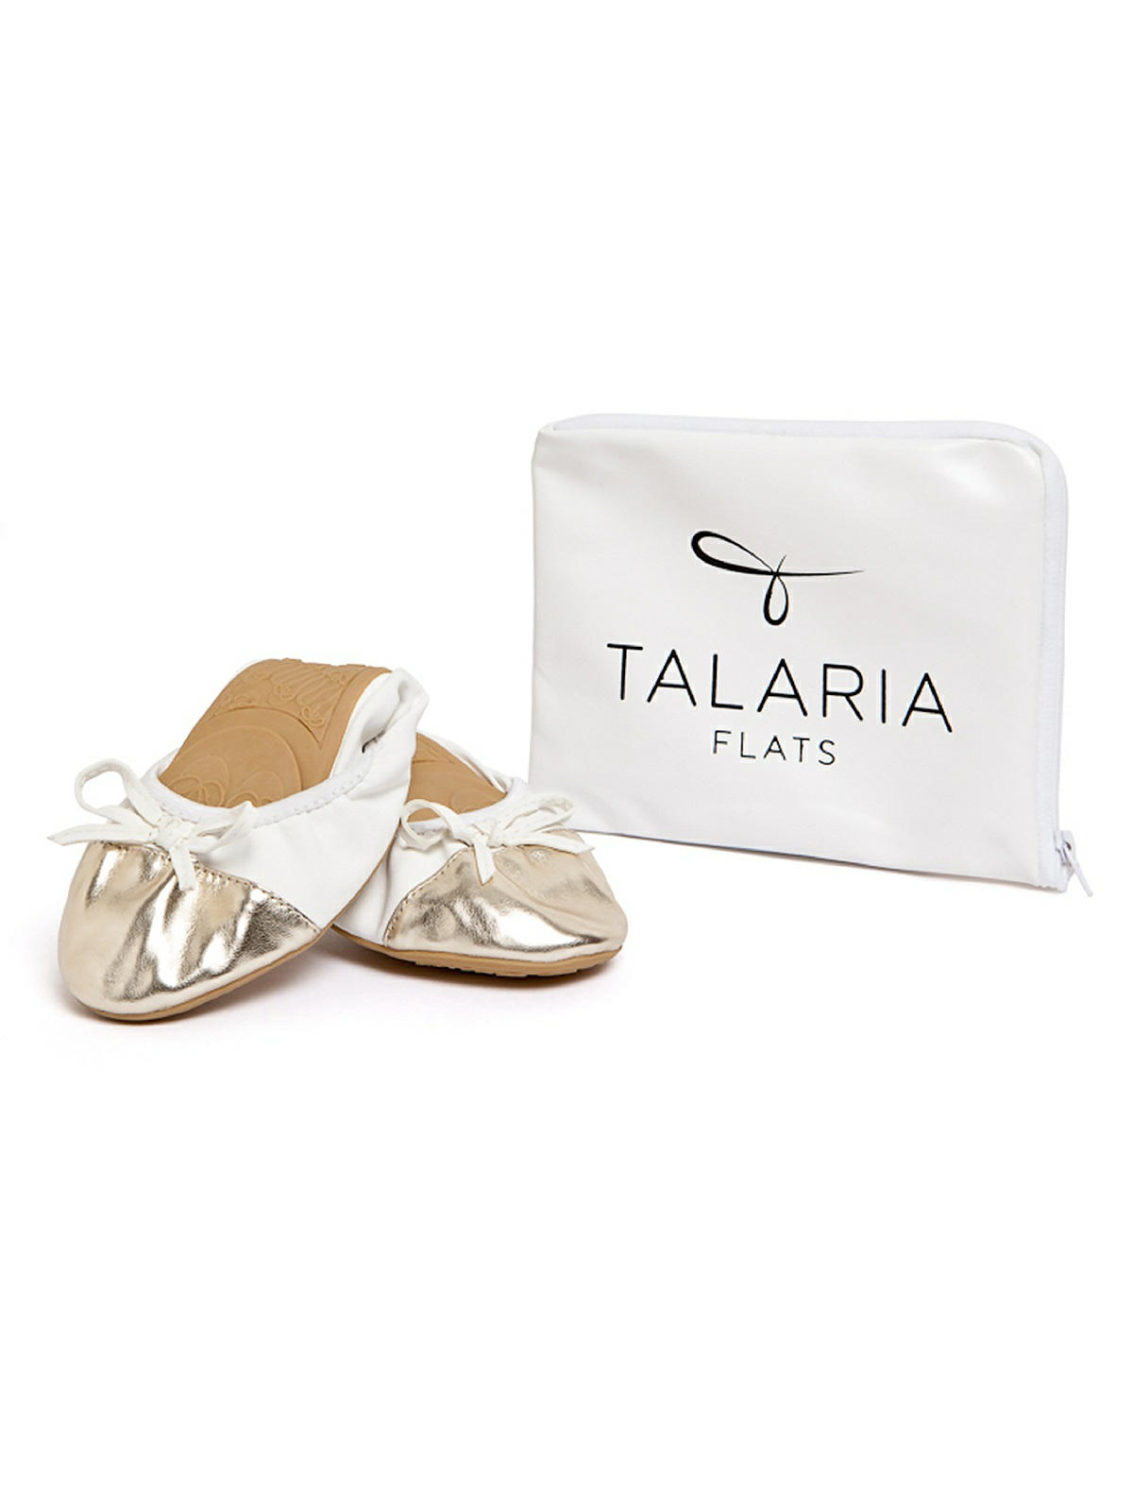 white and gold ballet flats for brides and bridesmaids